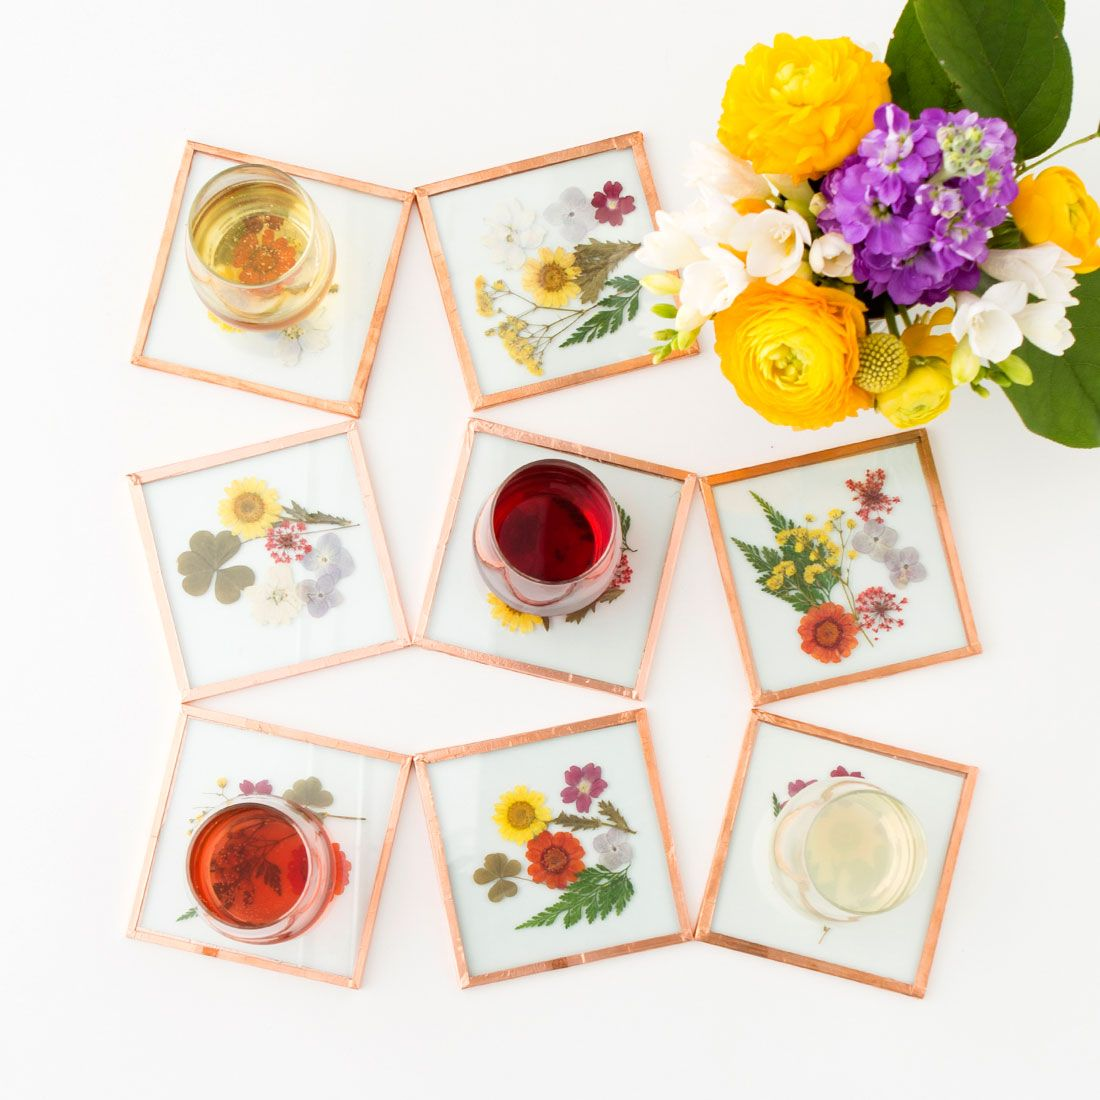 DIY These Pretty Coasters Instead of Buying Flowers for Mom | Art ...